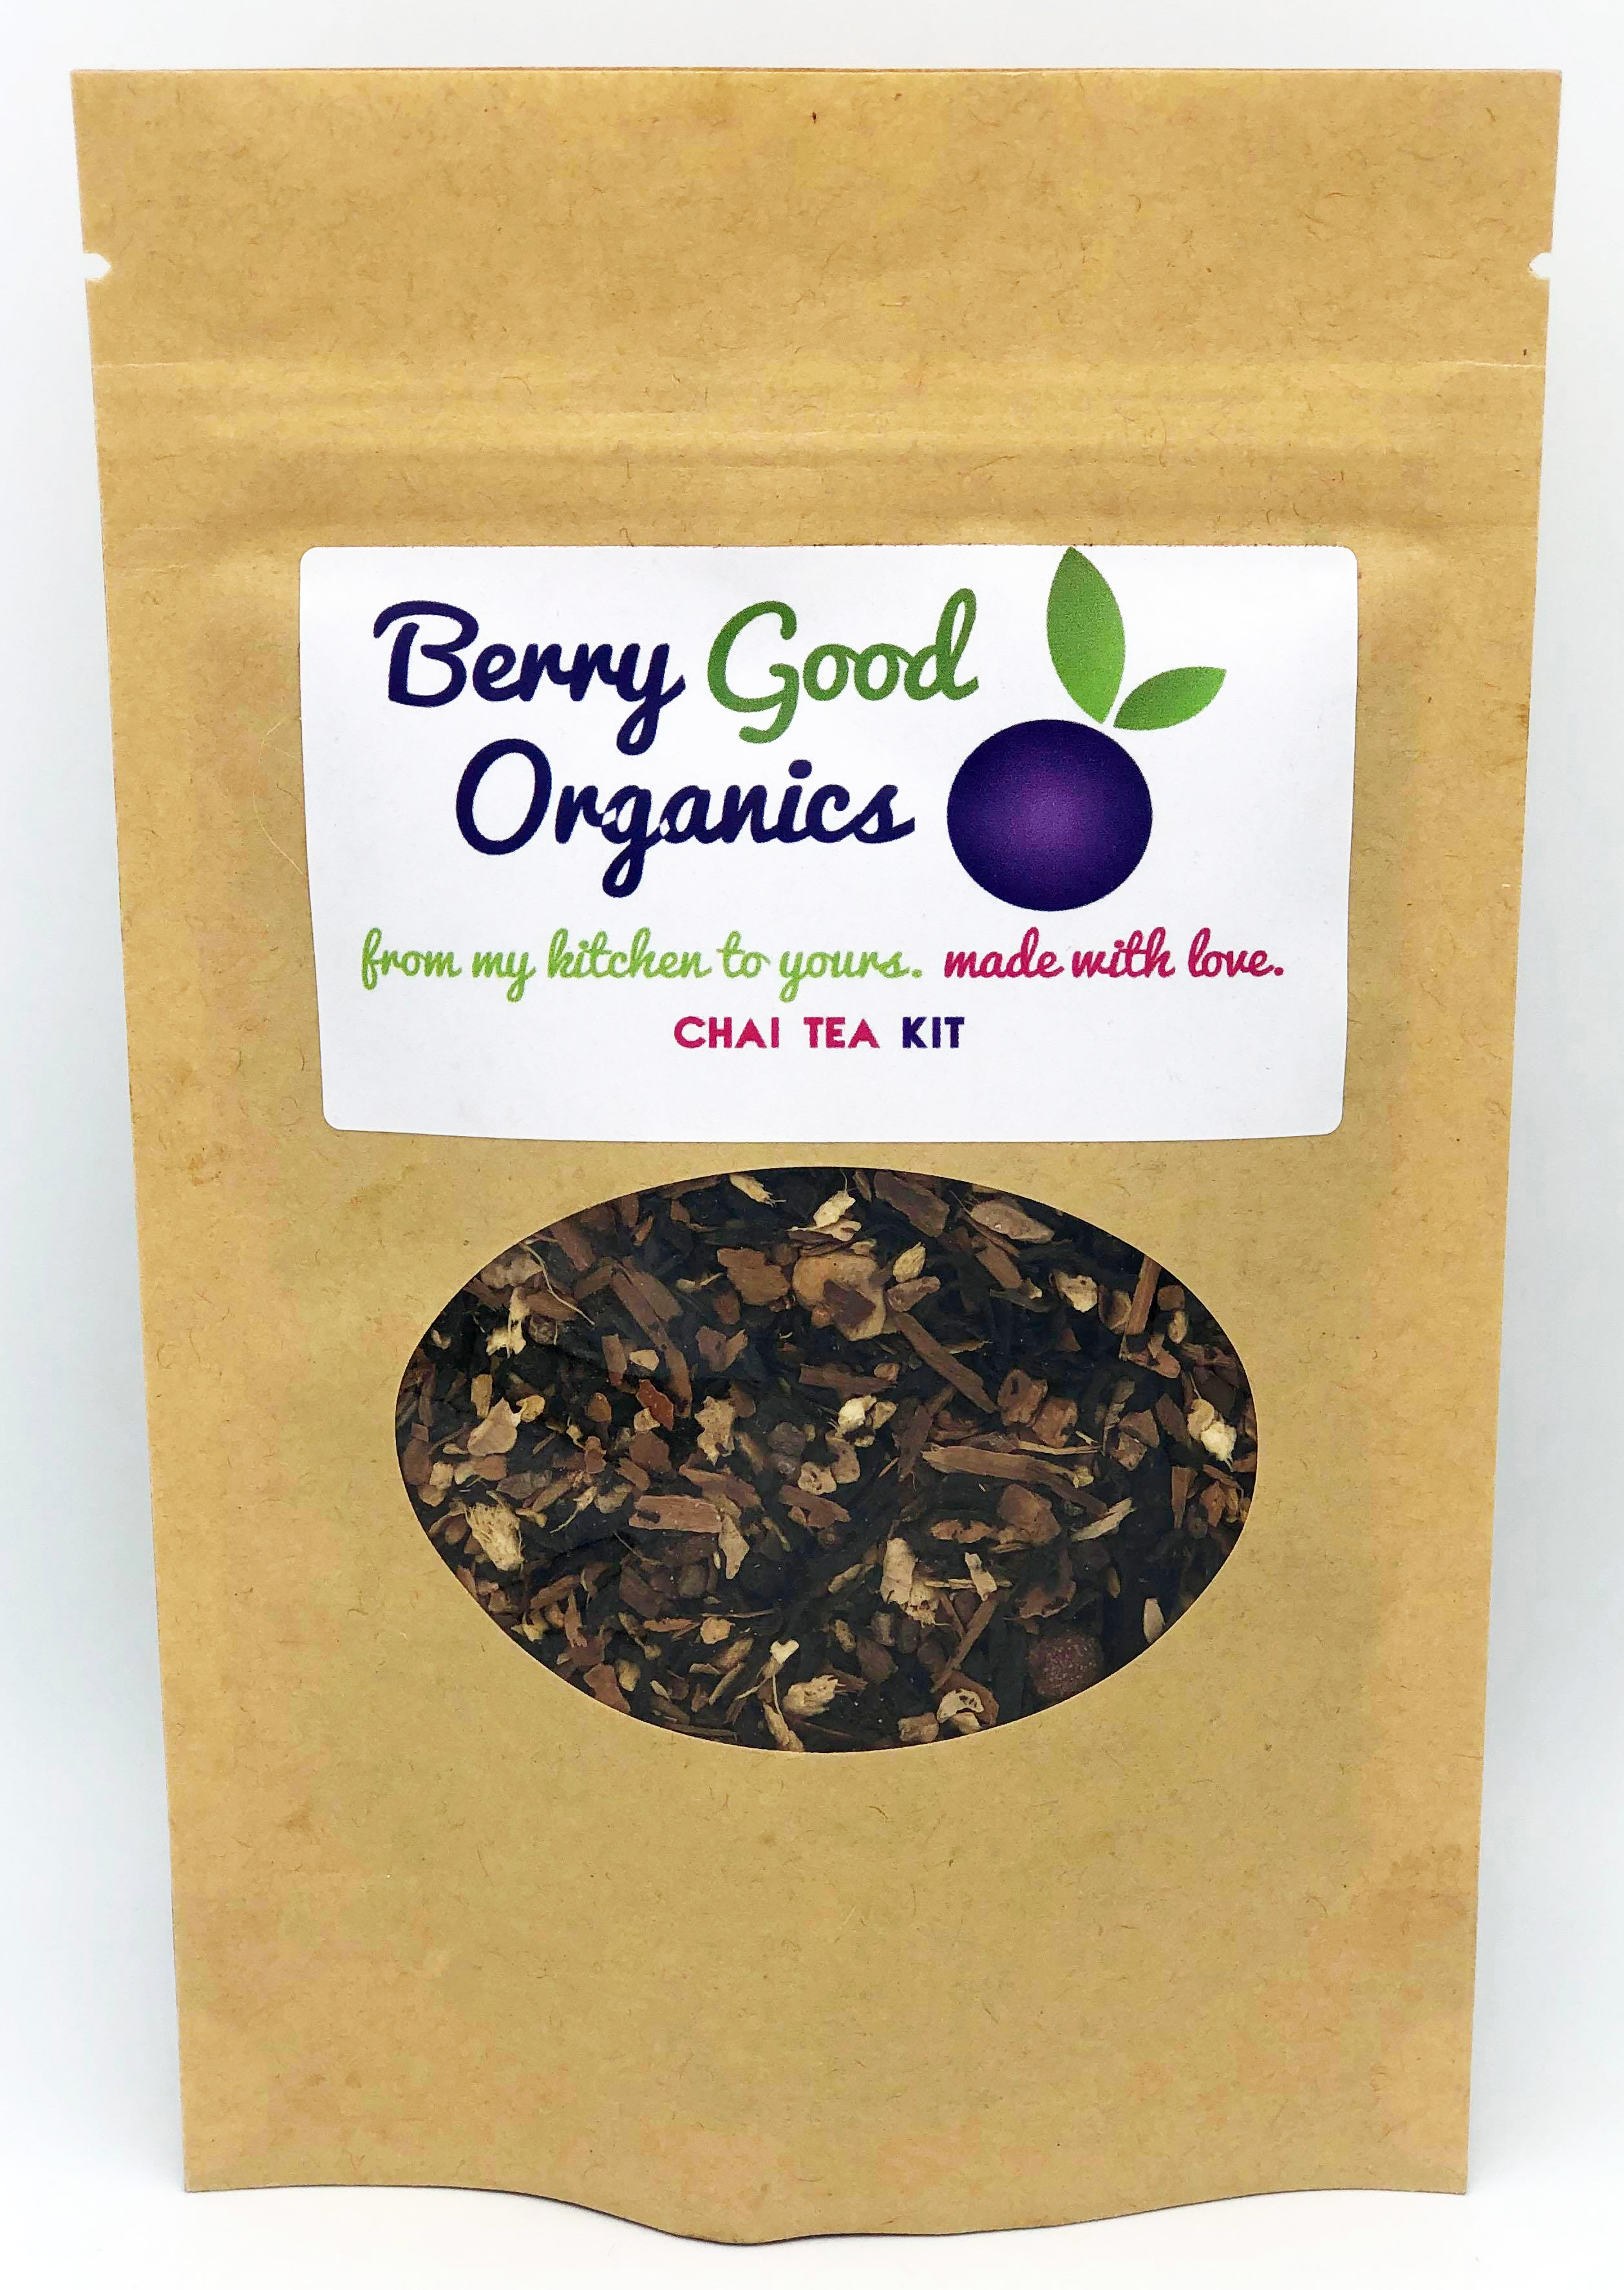 Chai Tea Concentrate Kit